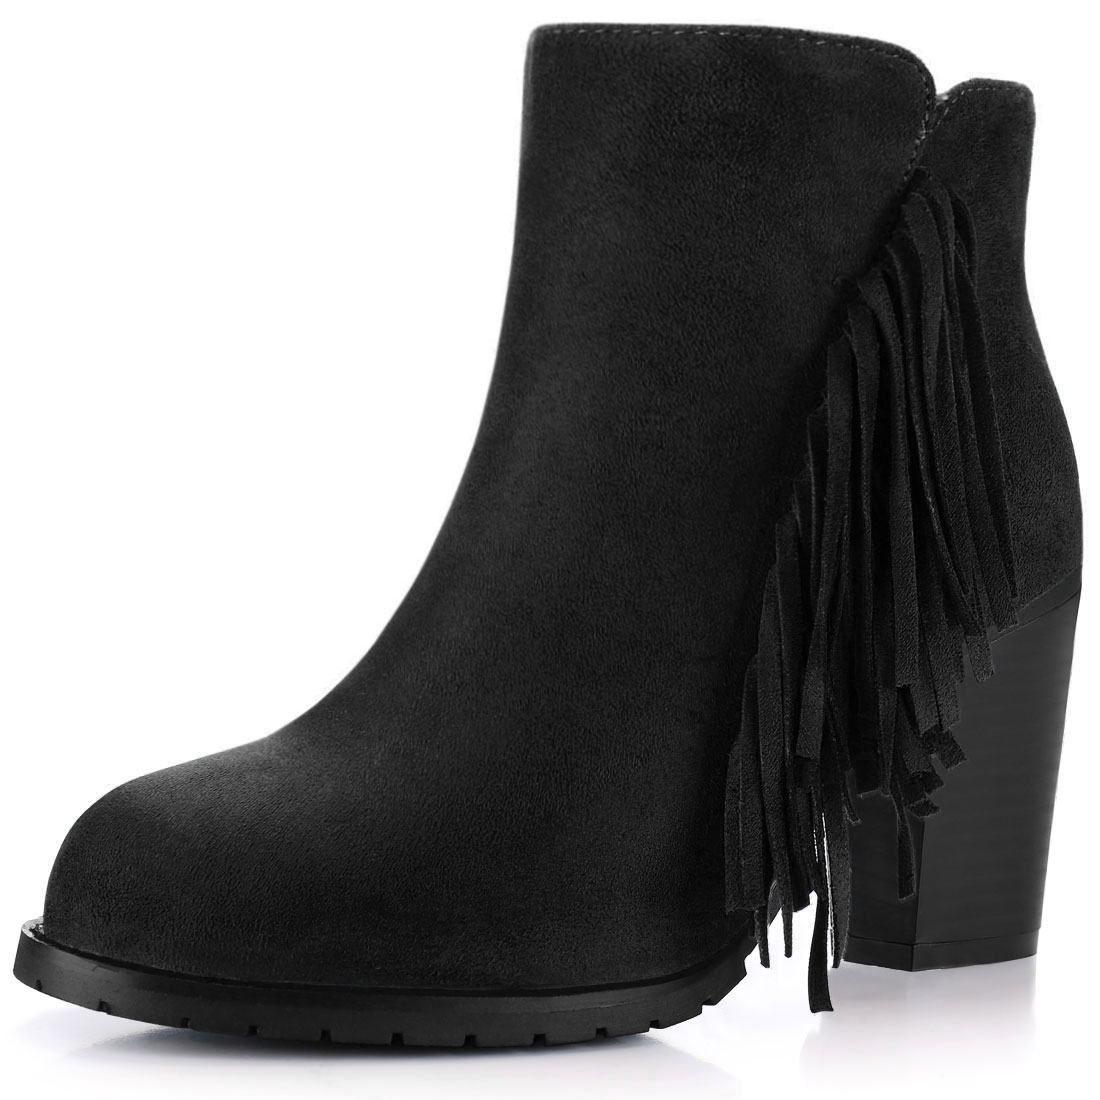 Women Fringe Trim Block High Heel Zip Side Ankle Boots Black US 7.5